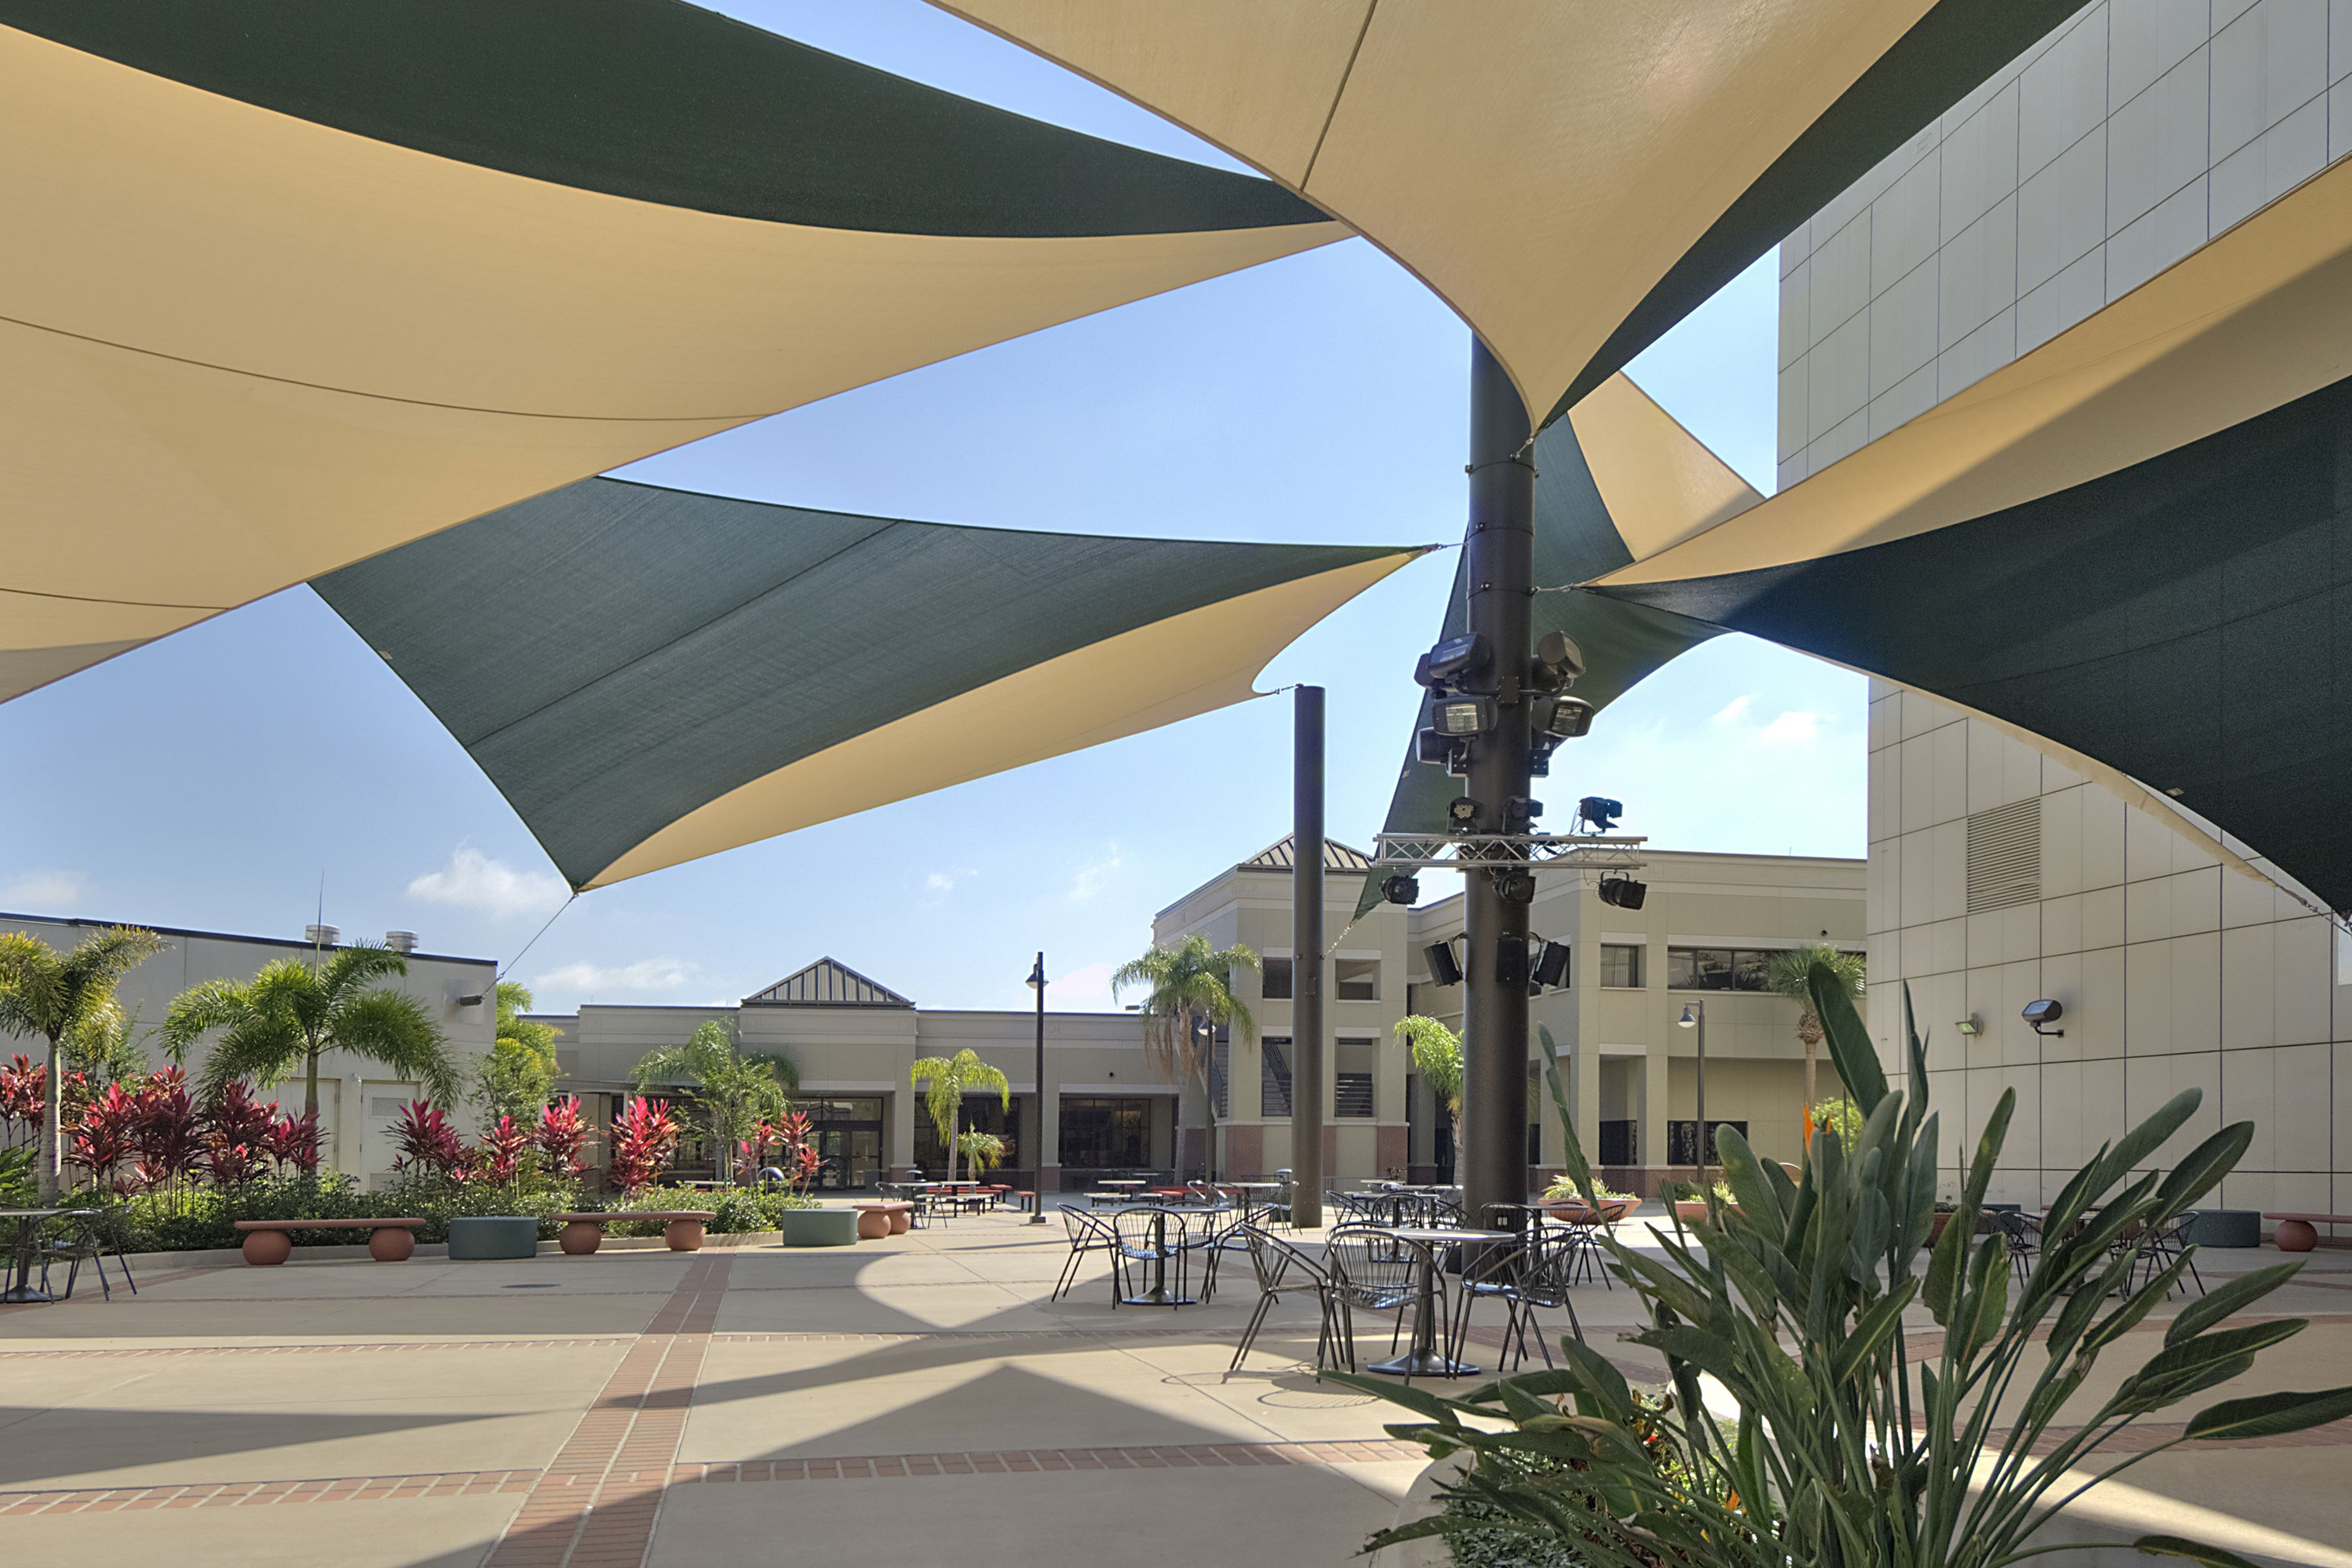 Dale mabry campus of hillsborough community college is the